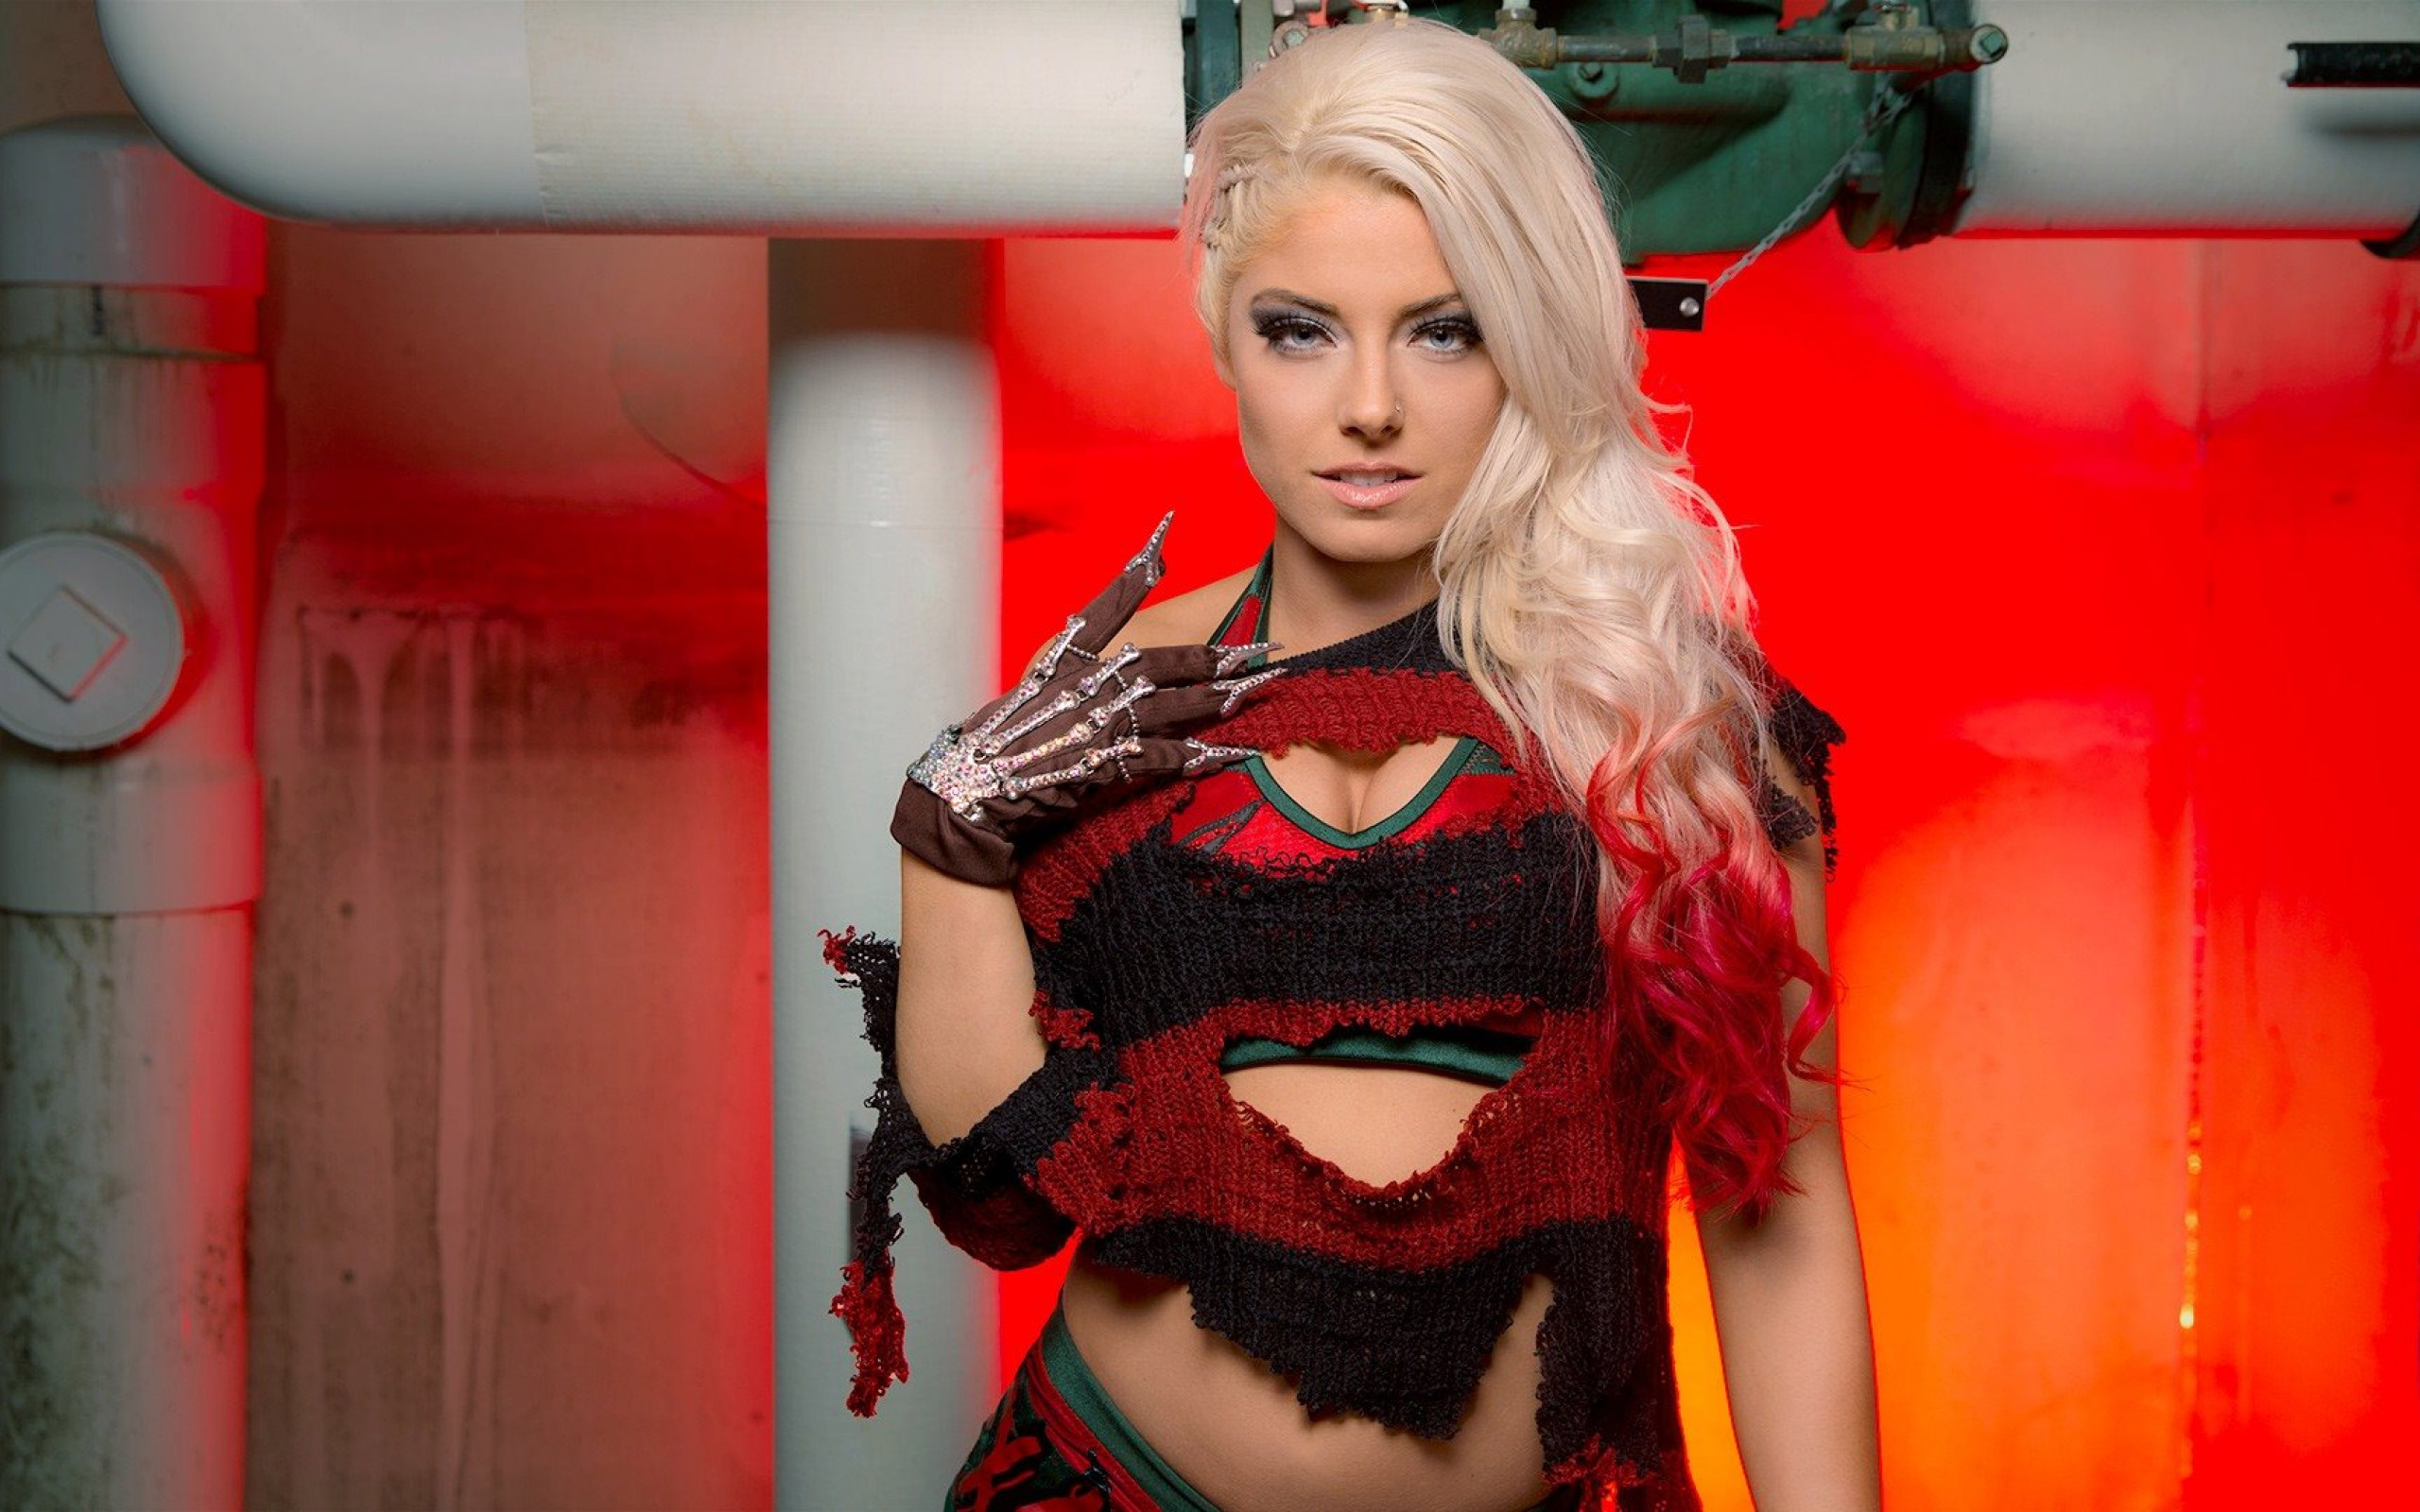 1280x1024 Alexa Bliss Wwe 1280x1024 Resolution Hd 4k